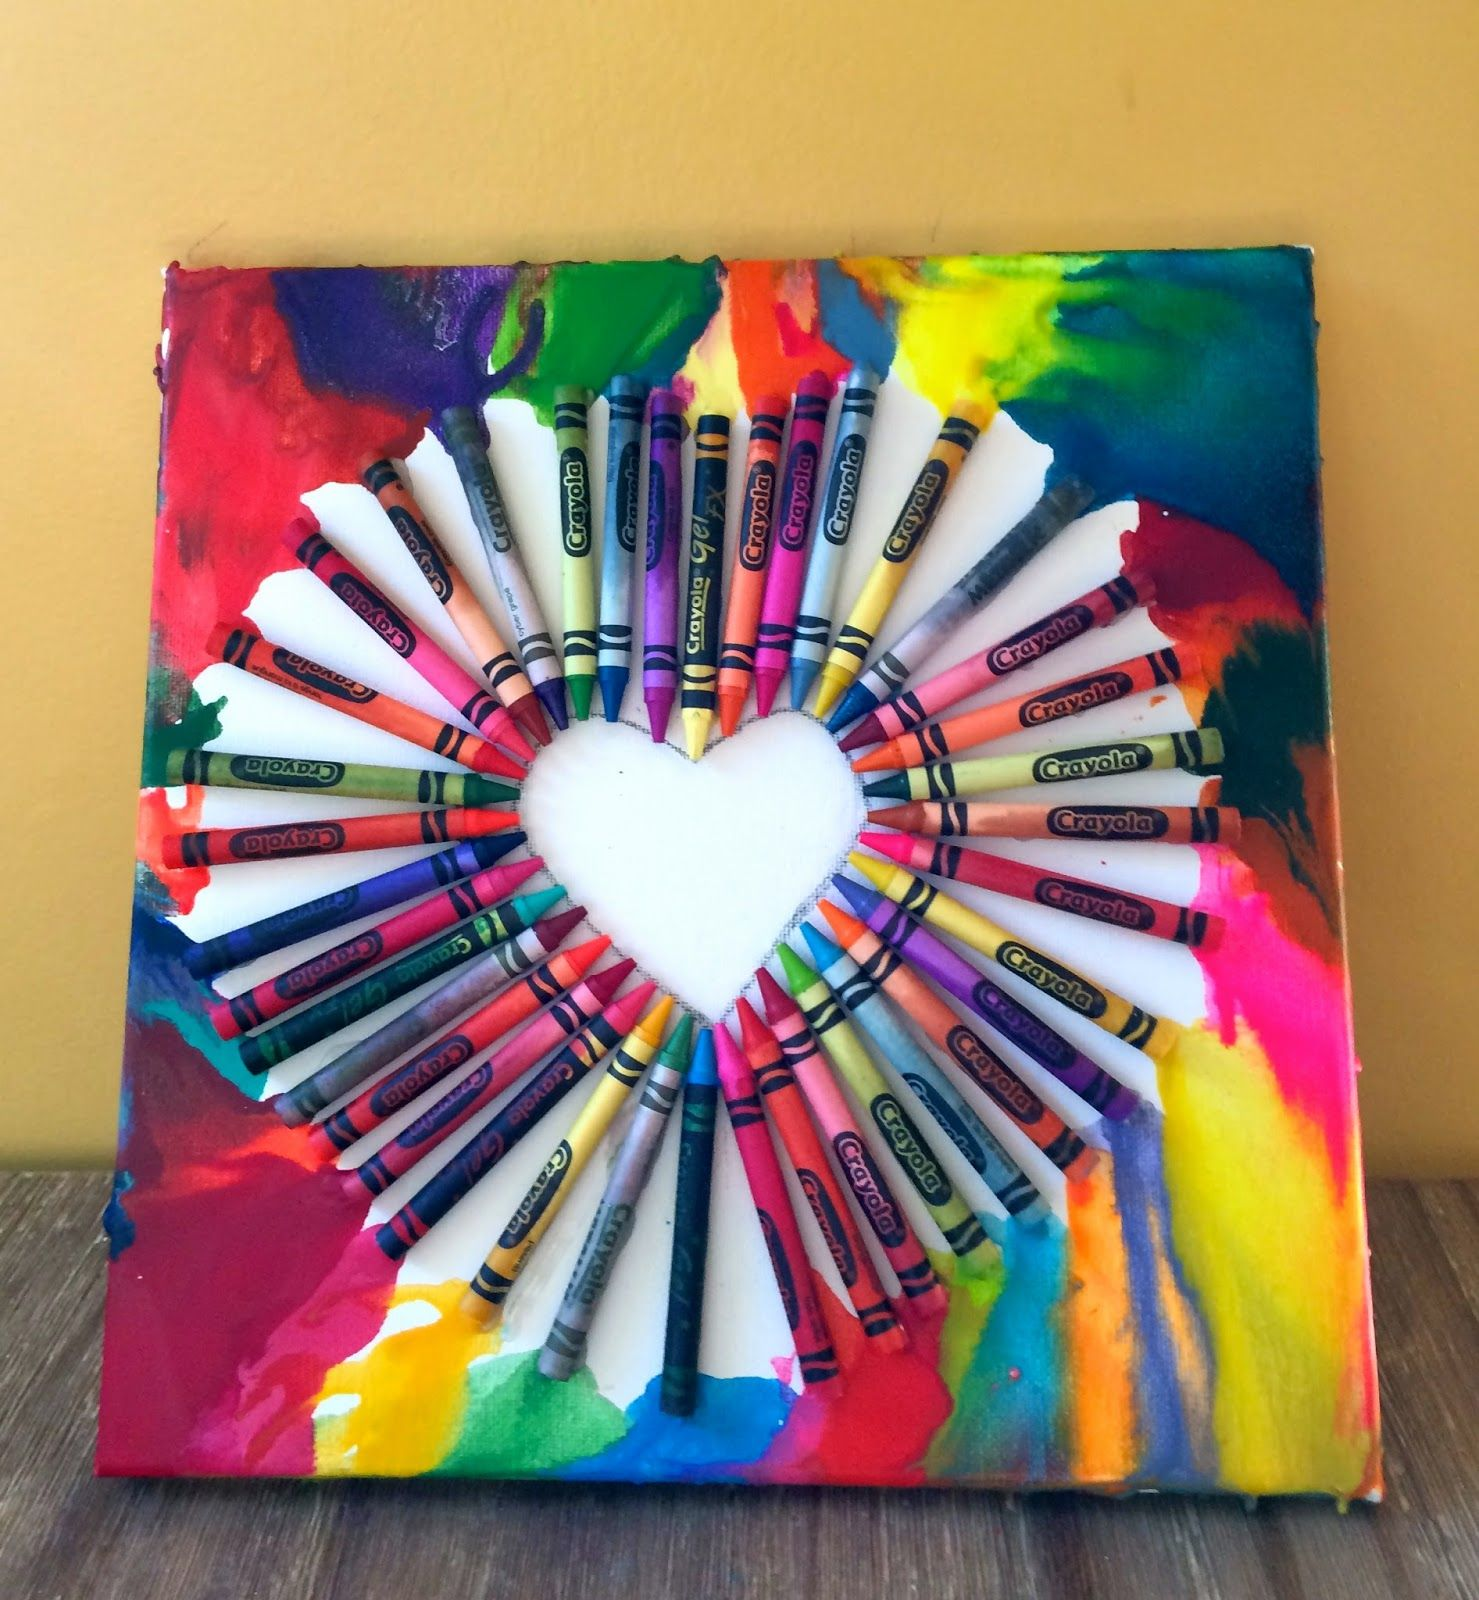 color crayon art : Easy Crayon Art Only Takes 45 Minutes To Make Good For Kids Adults